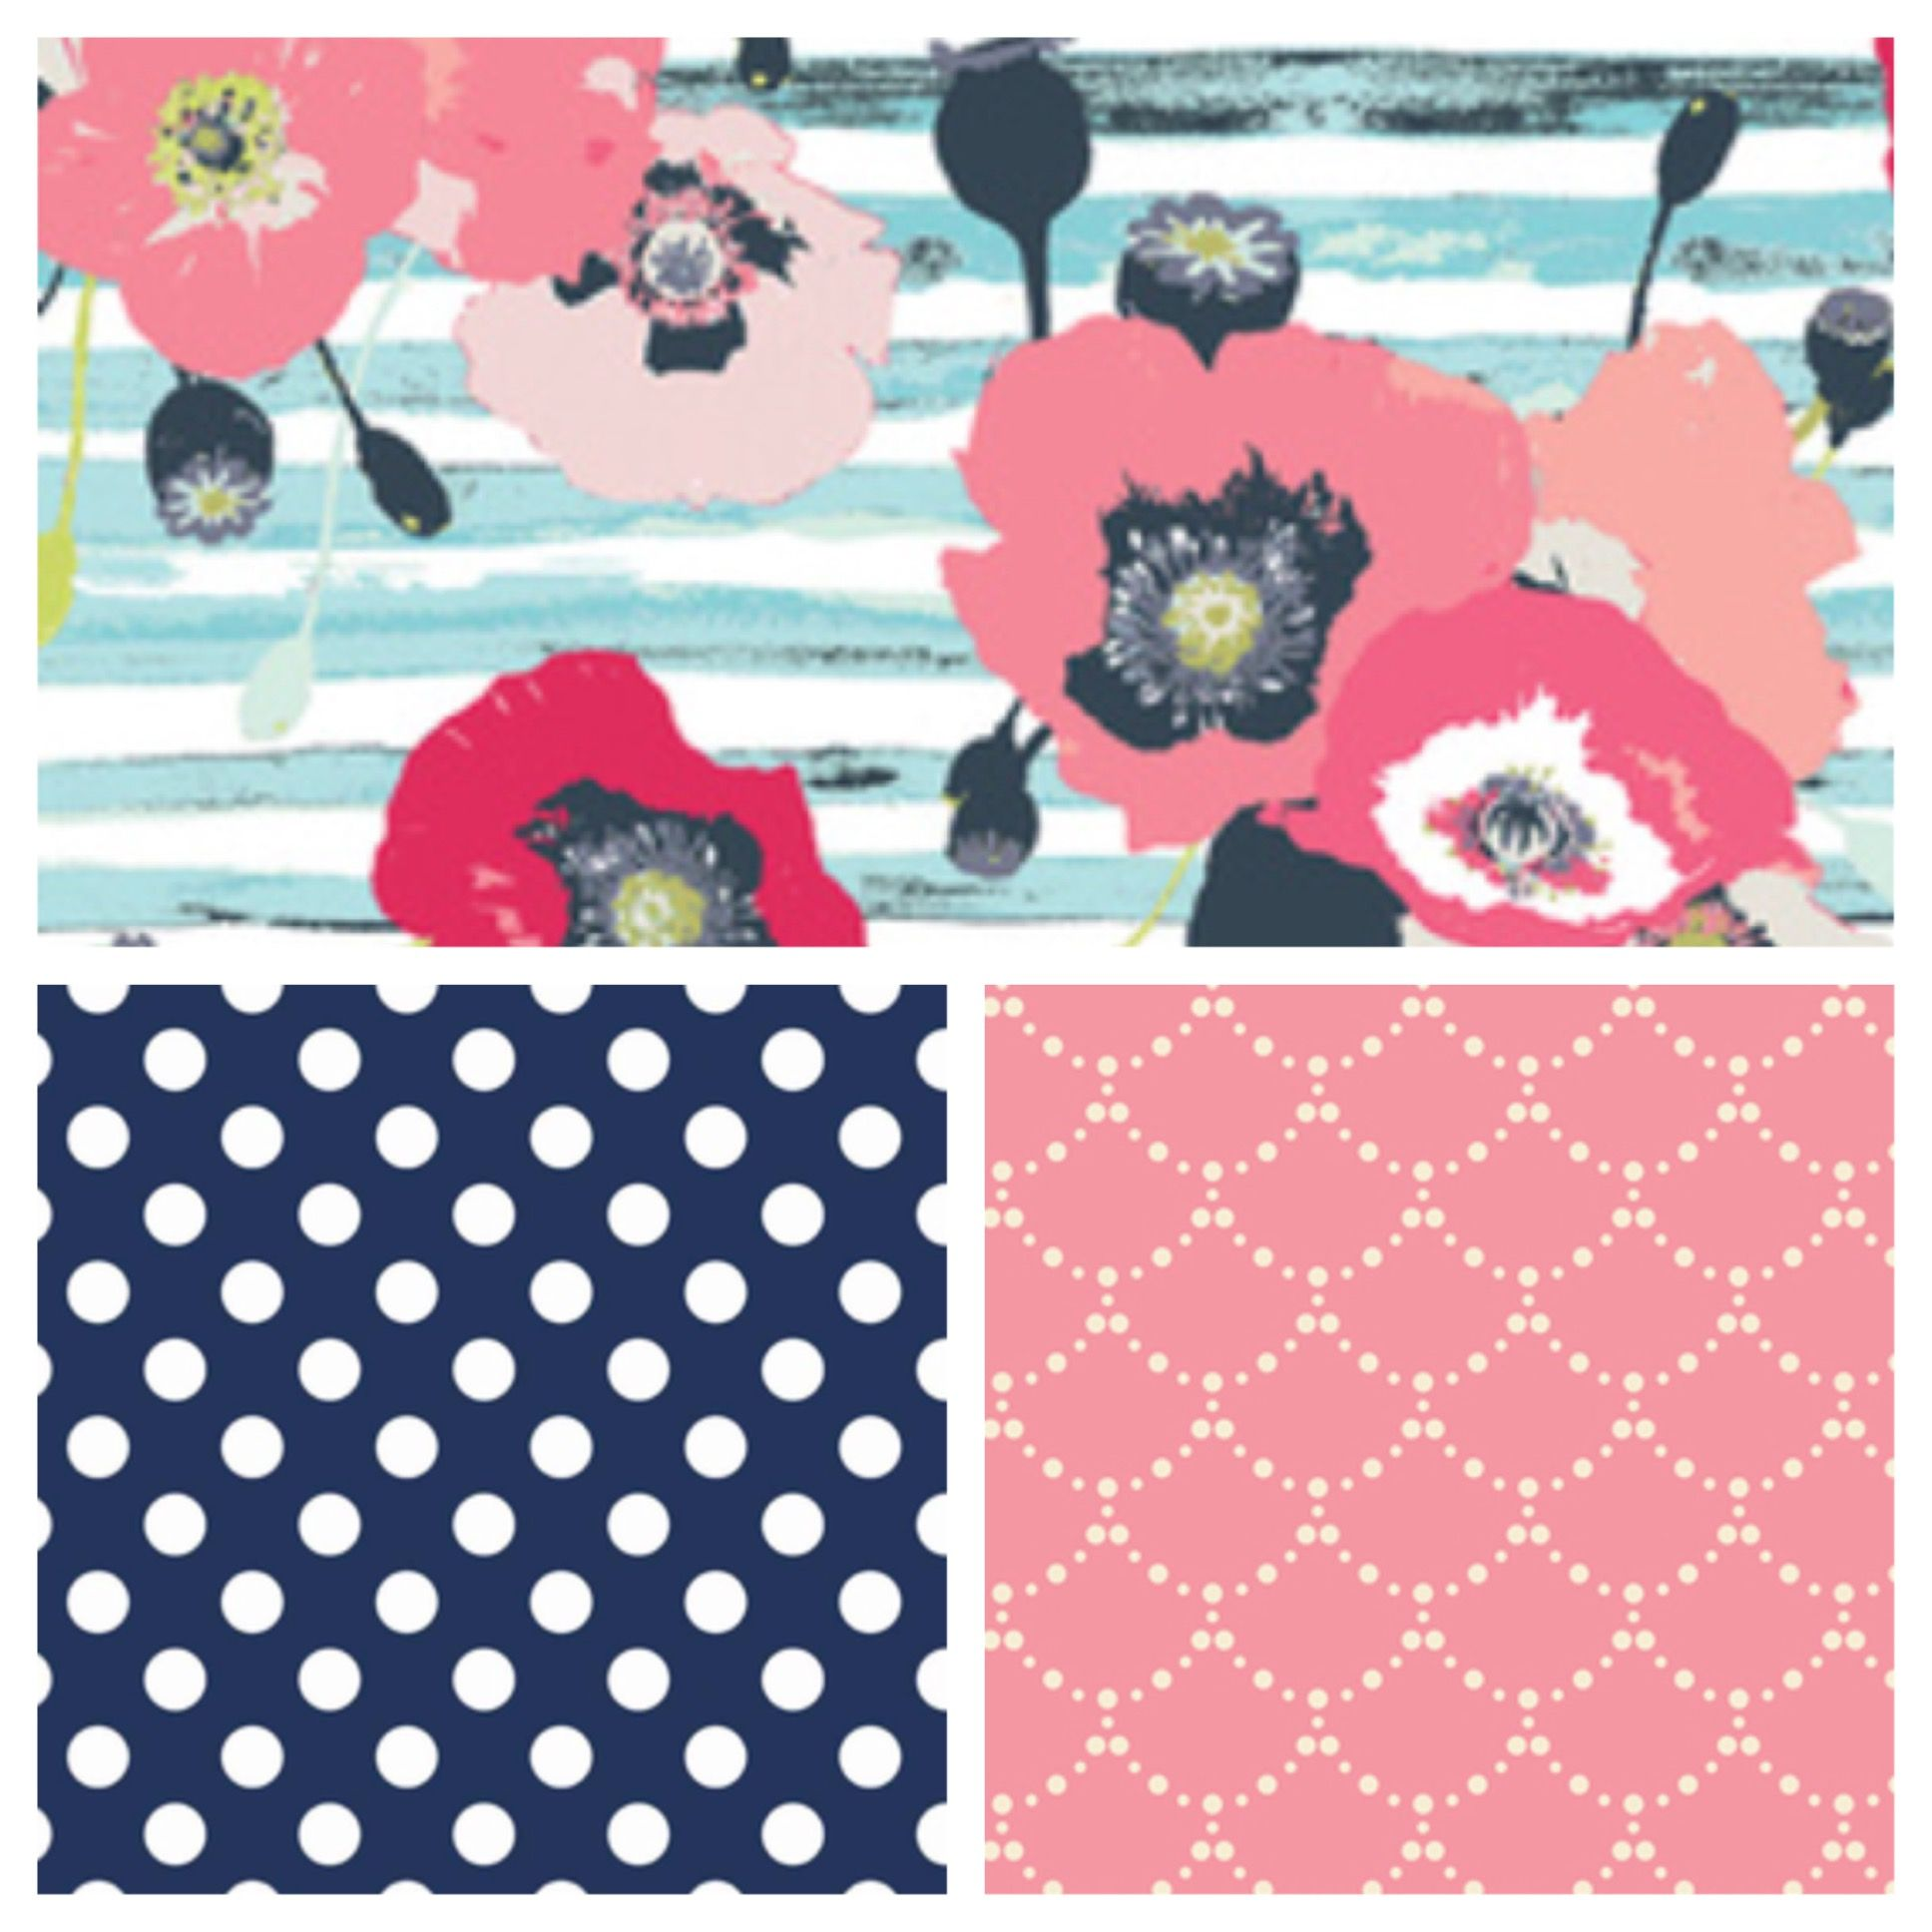 Baby S Nursery Fabrics Paparounes In Pastel Dumb Dot Navy And Ripples Rose Perfect For A Feminine But Not Overly Y C